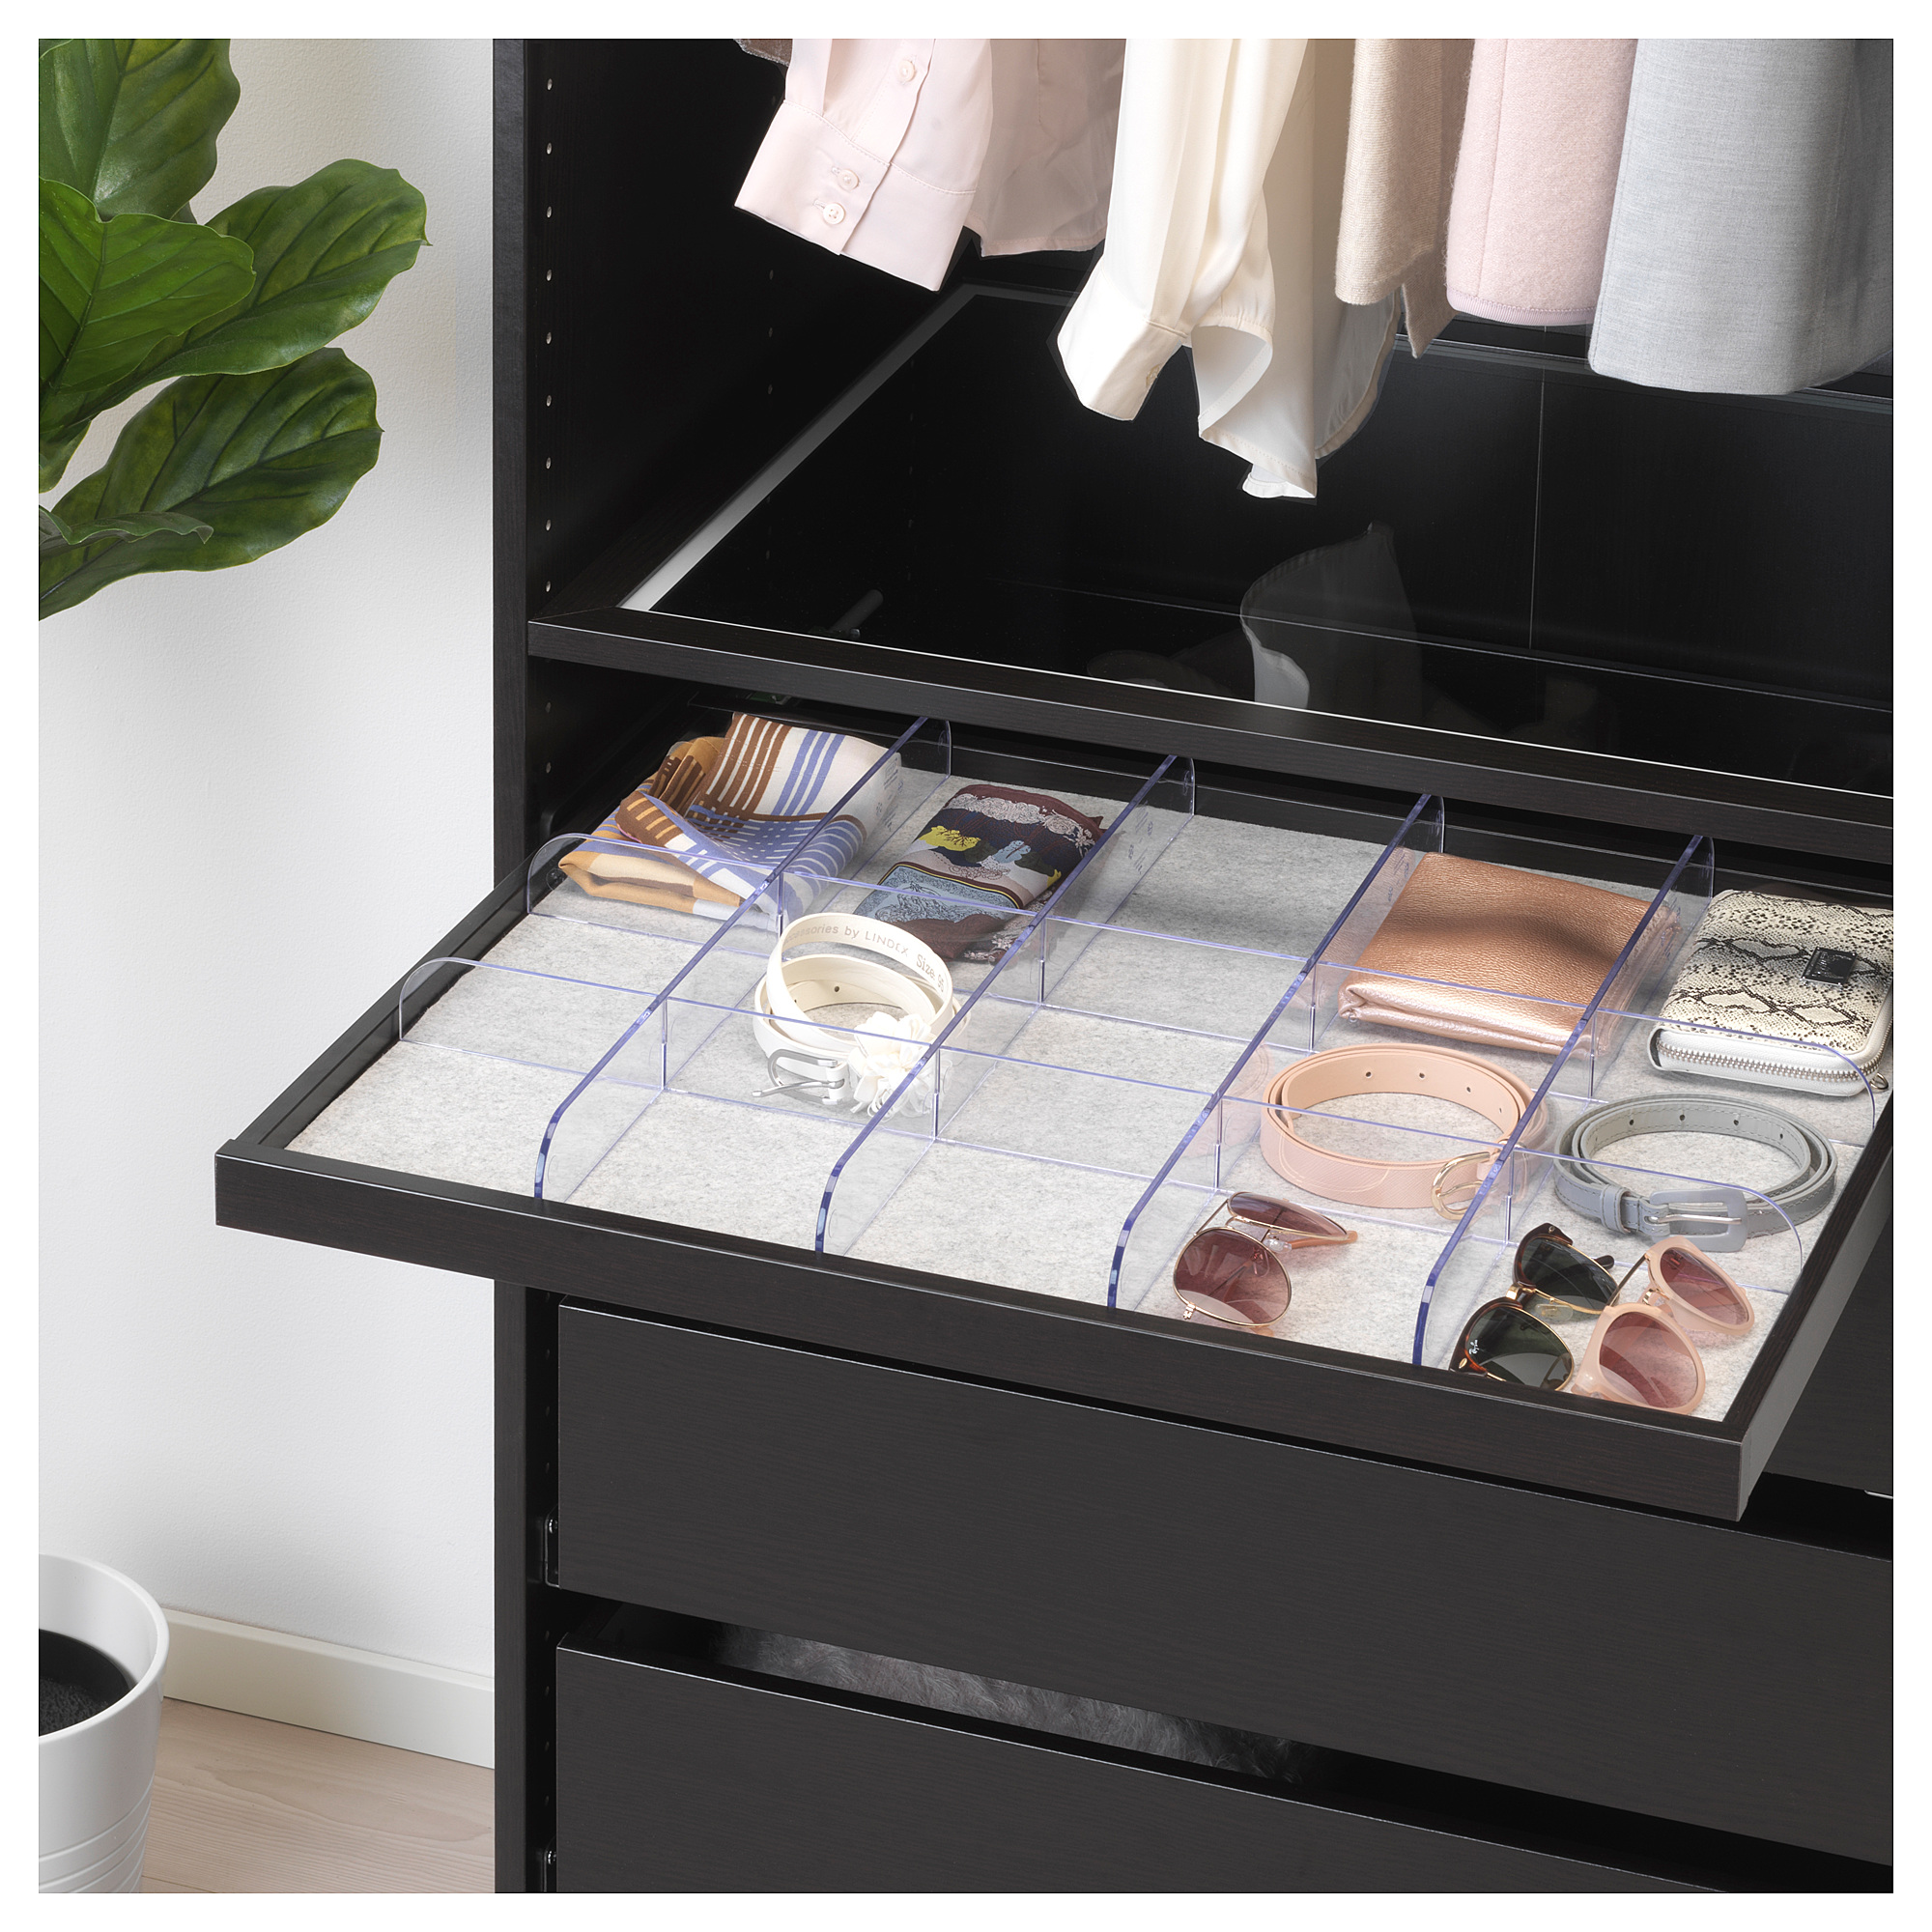 Ikea komplement pullout tray with divider blackbrown